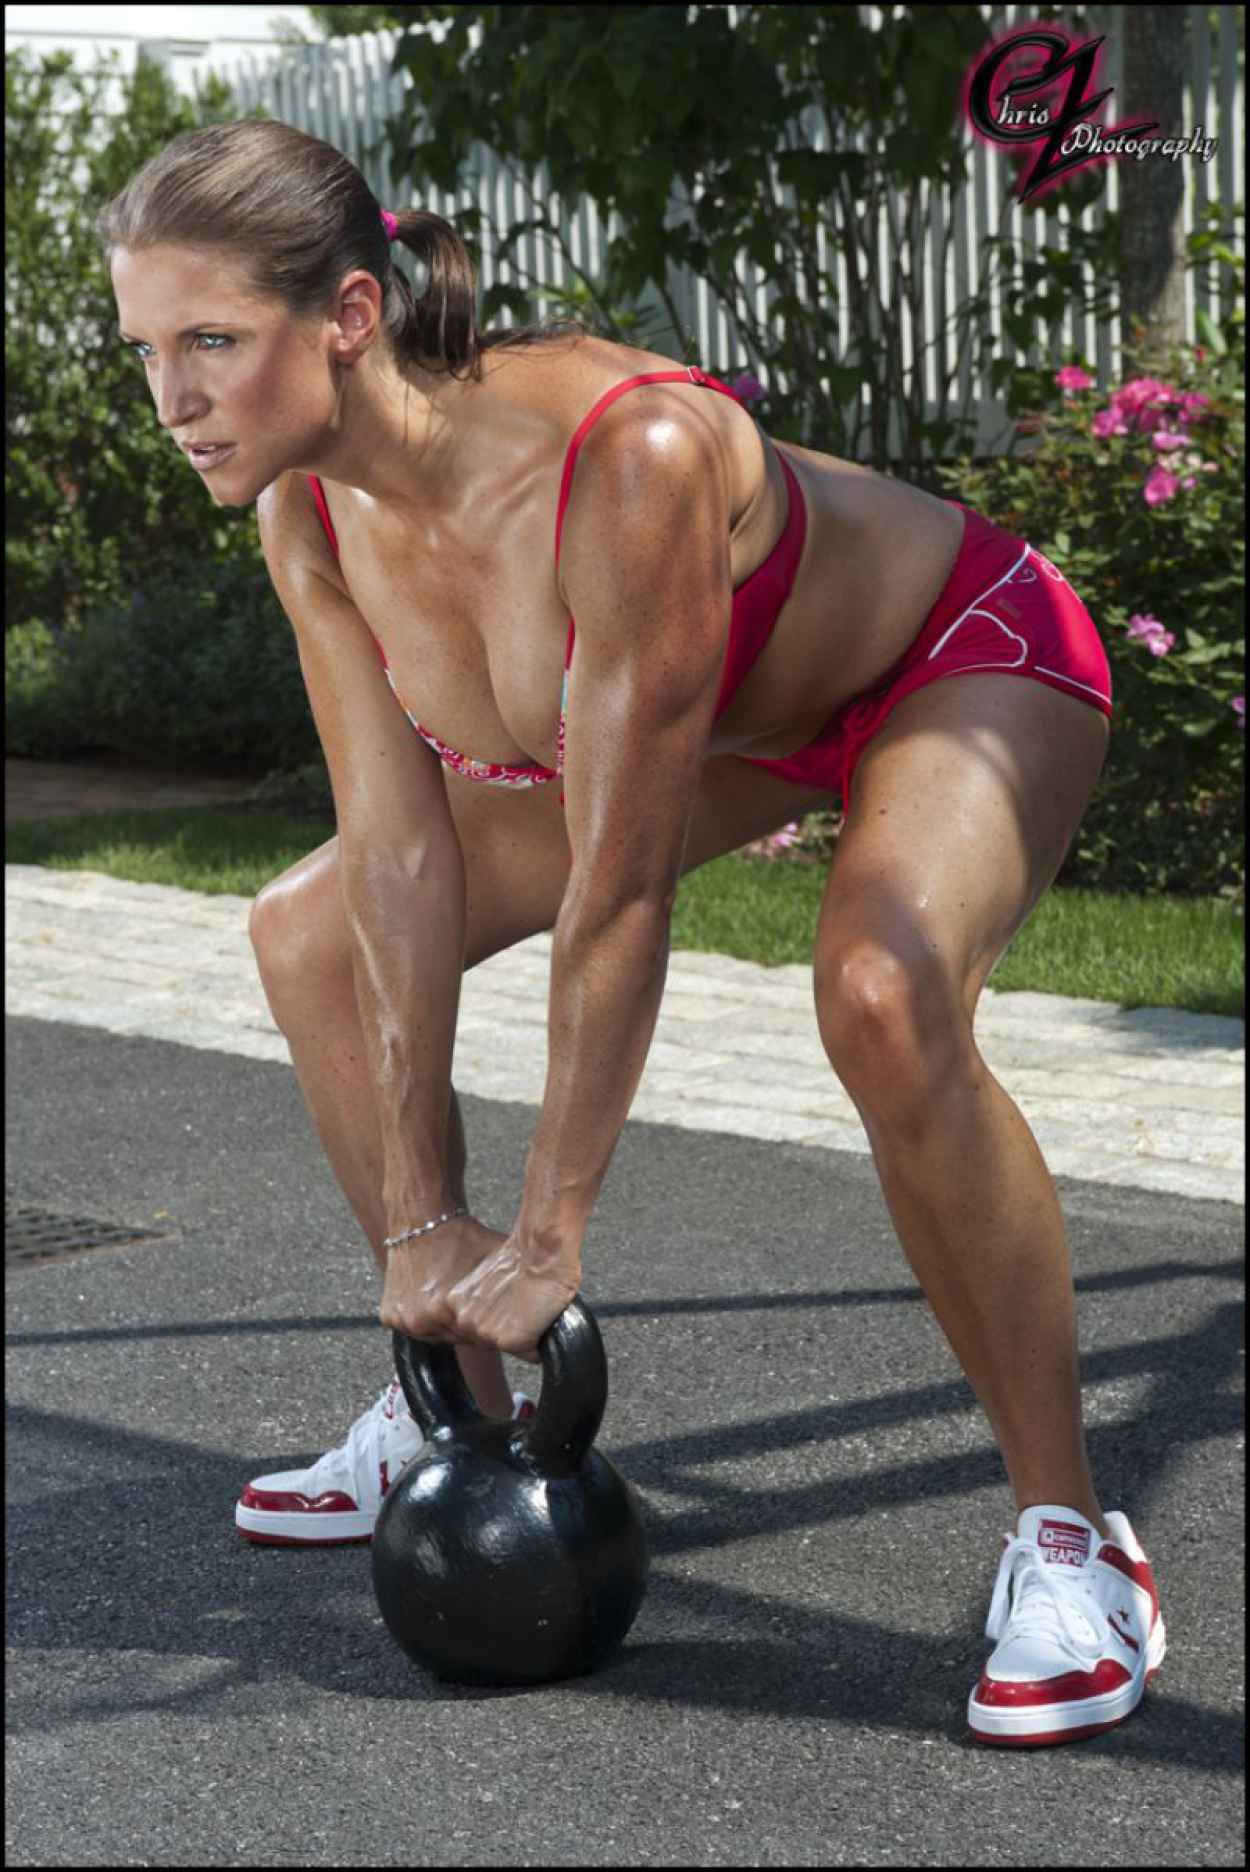 Stephanie McMahon in Bikini Working Out - Chris Zimmerman Photoshoot (2012)-5